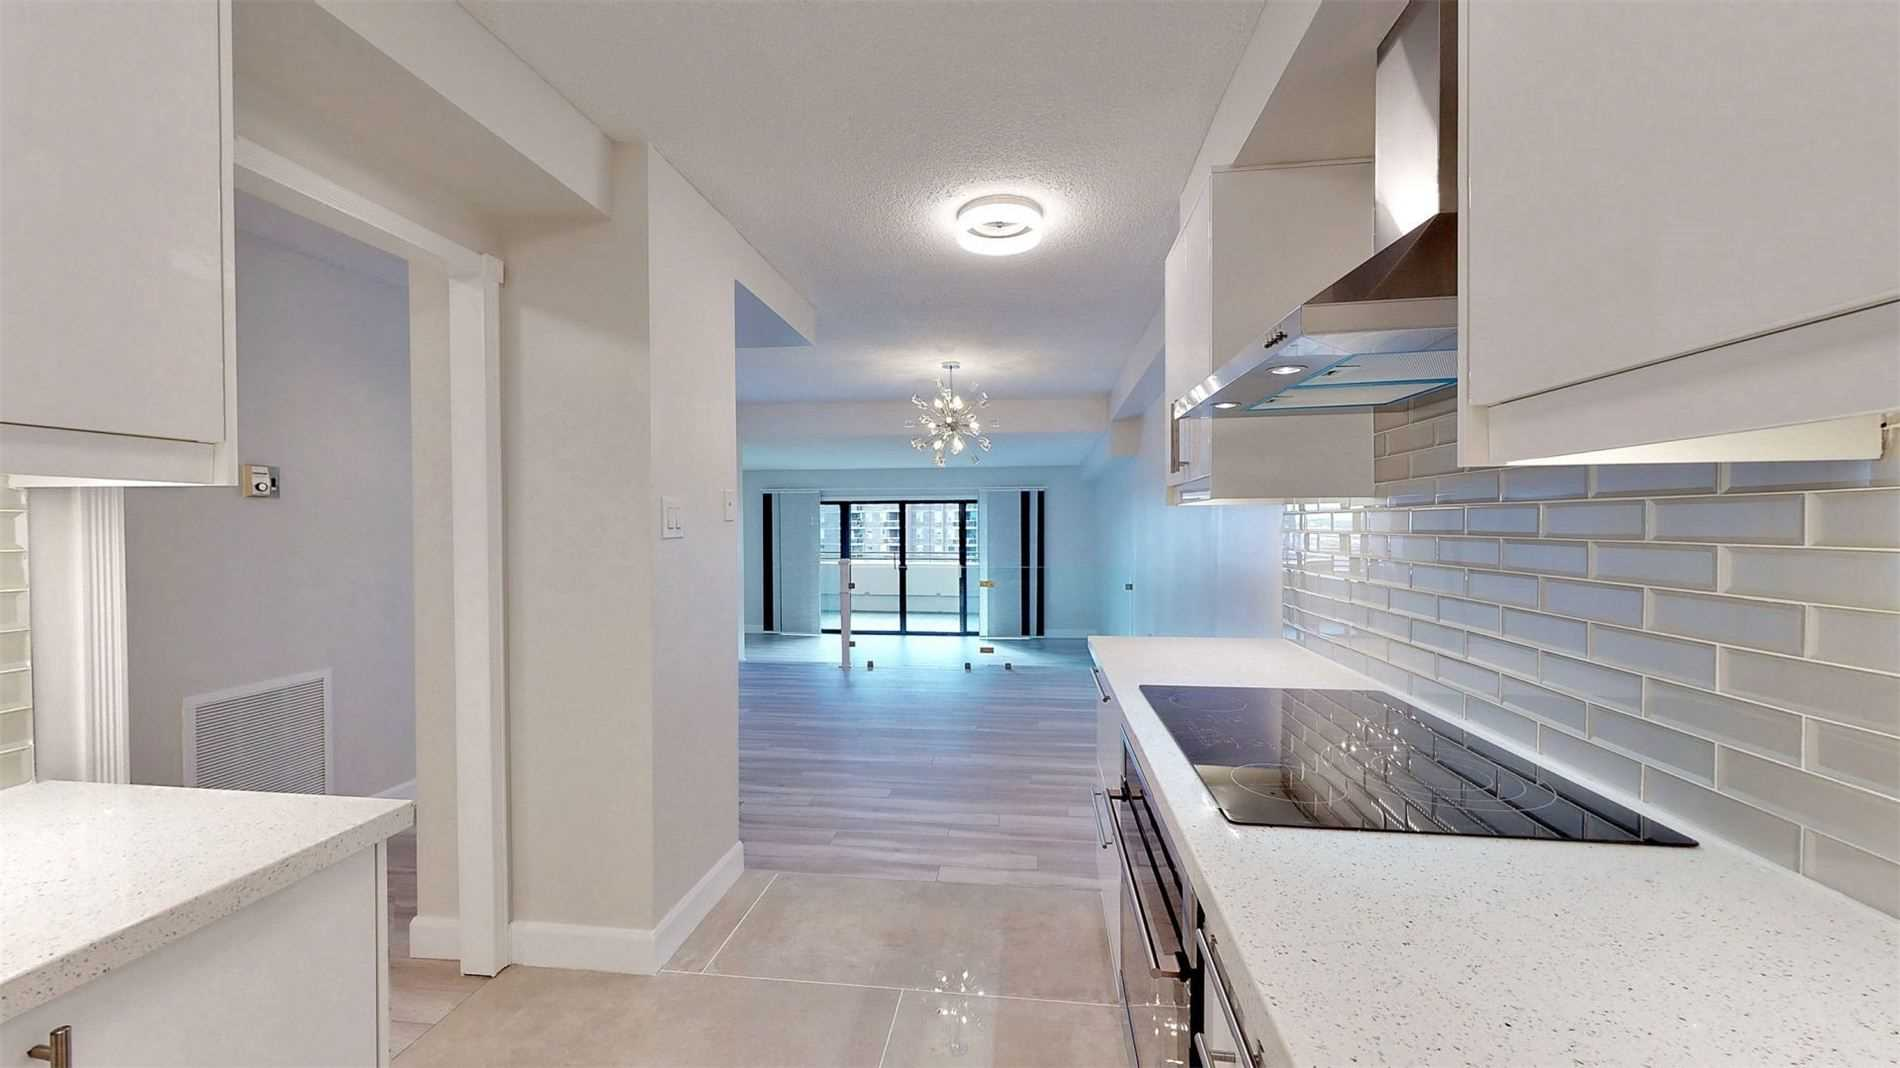 #908 - 965 Inverhouse Dr, Mississauga W4649866